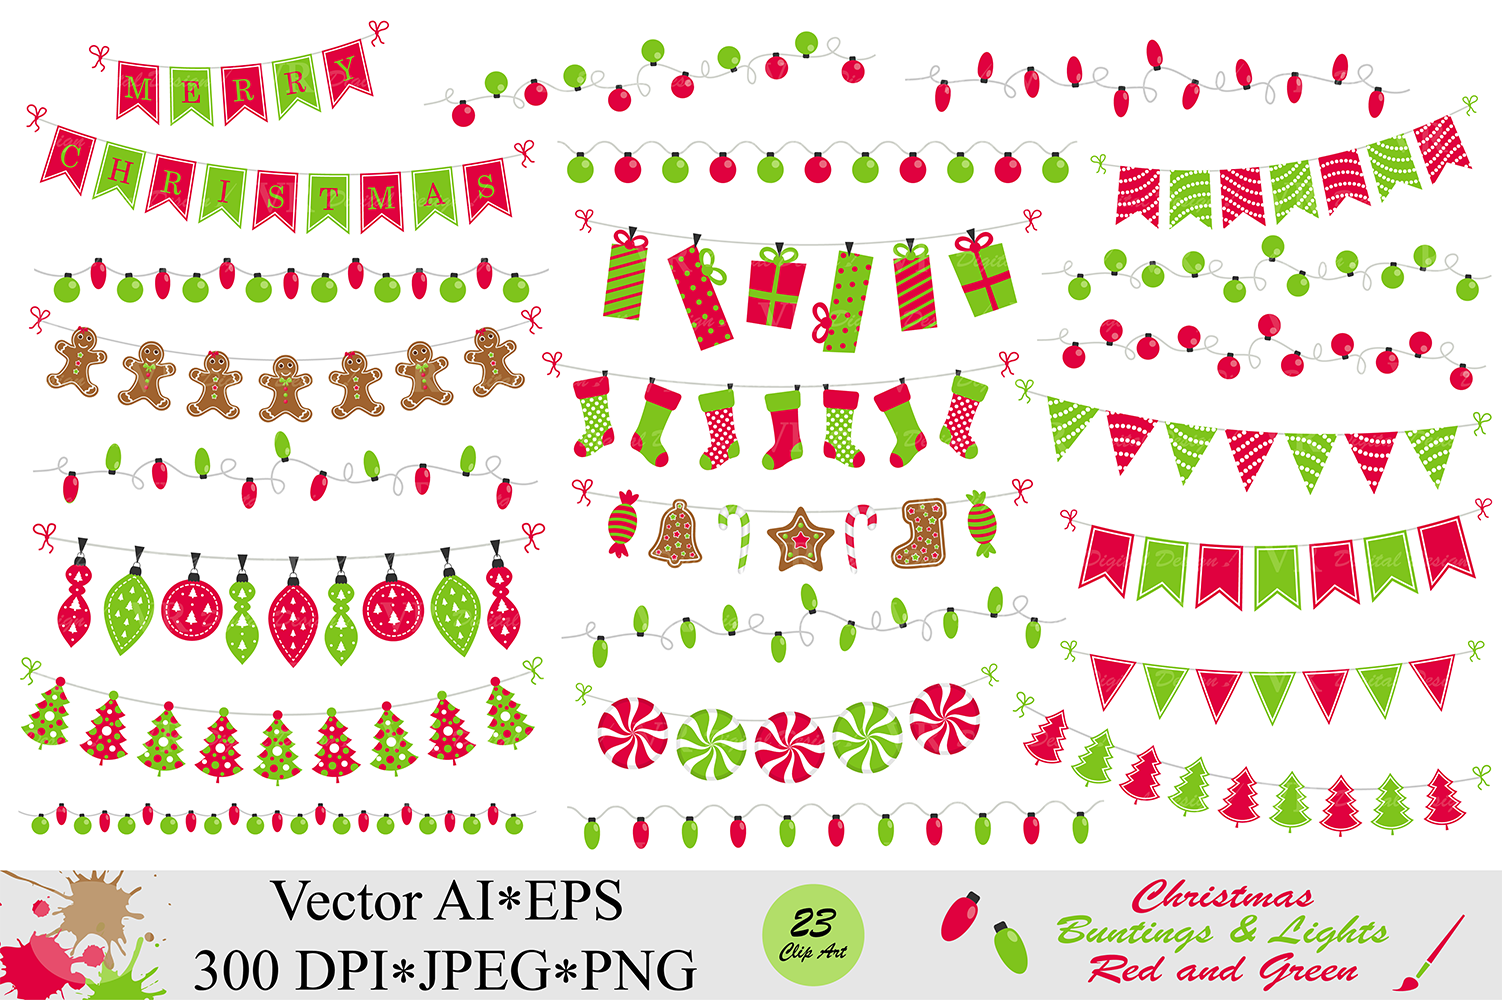 Christmas red and green bunting banners and string lights clipart - vector example image 1